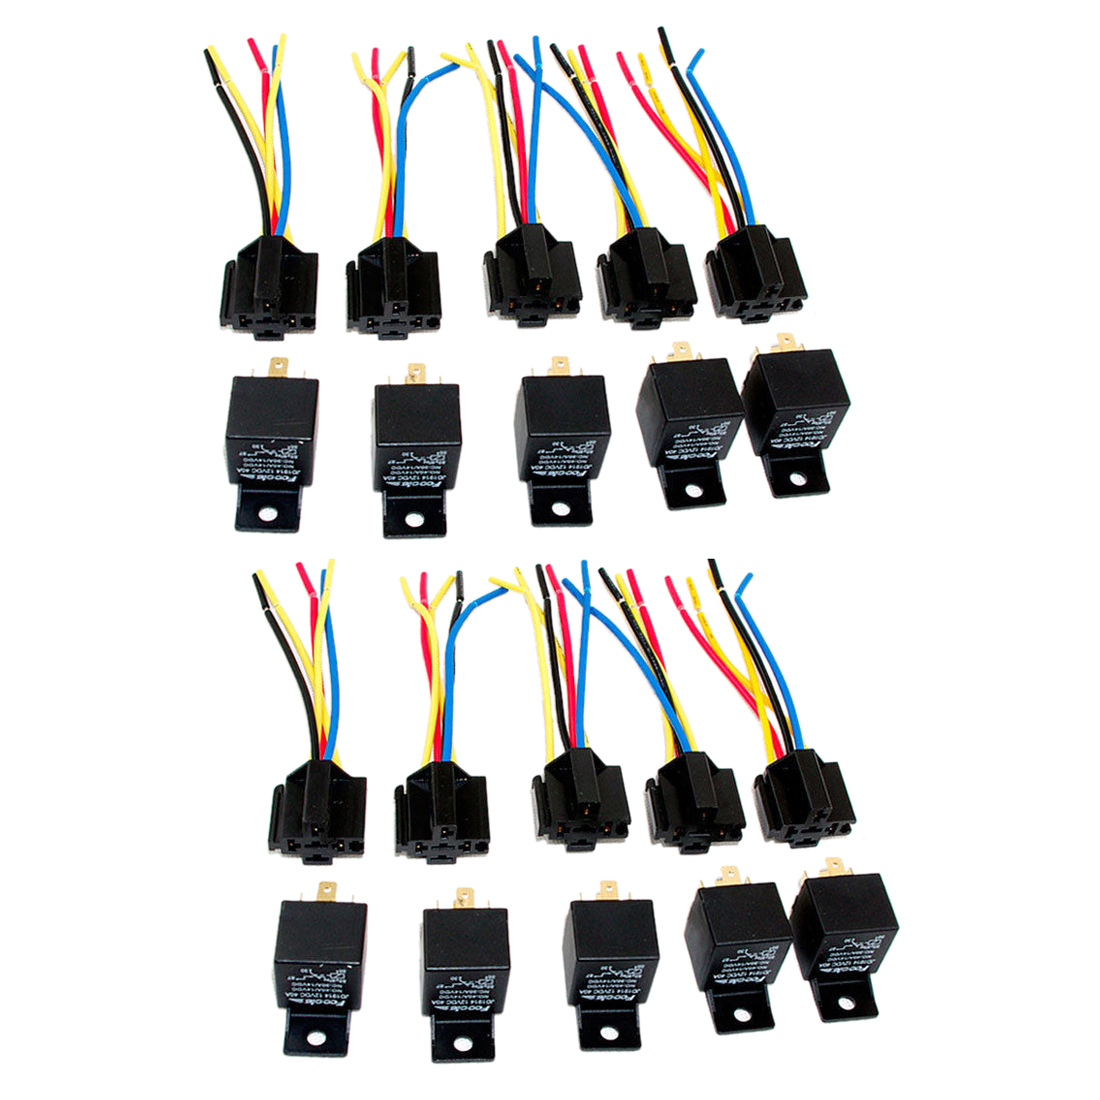 Lot10 New 12 Volt 40 Amp SPDT Automotive Relay with Wires & Harness Socket lot10 new 12 volt 40 amp spdt automotive relay with wires